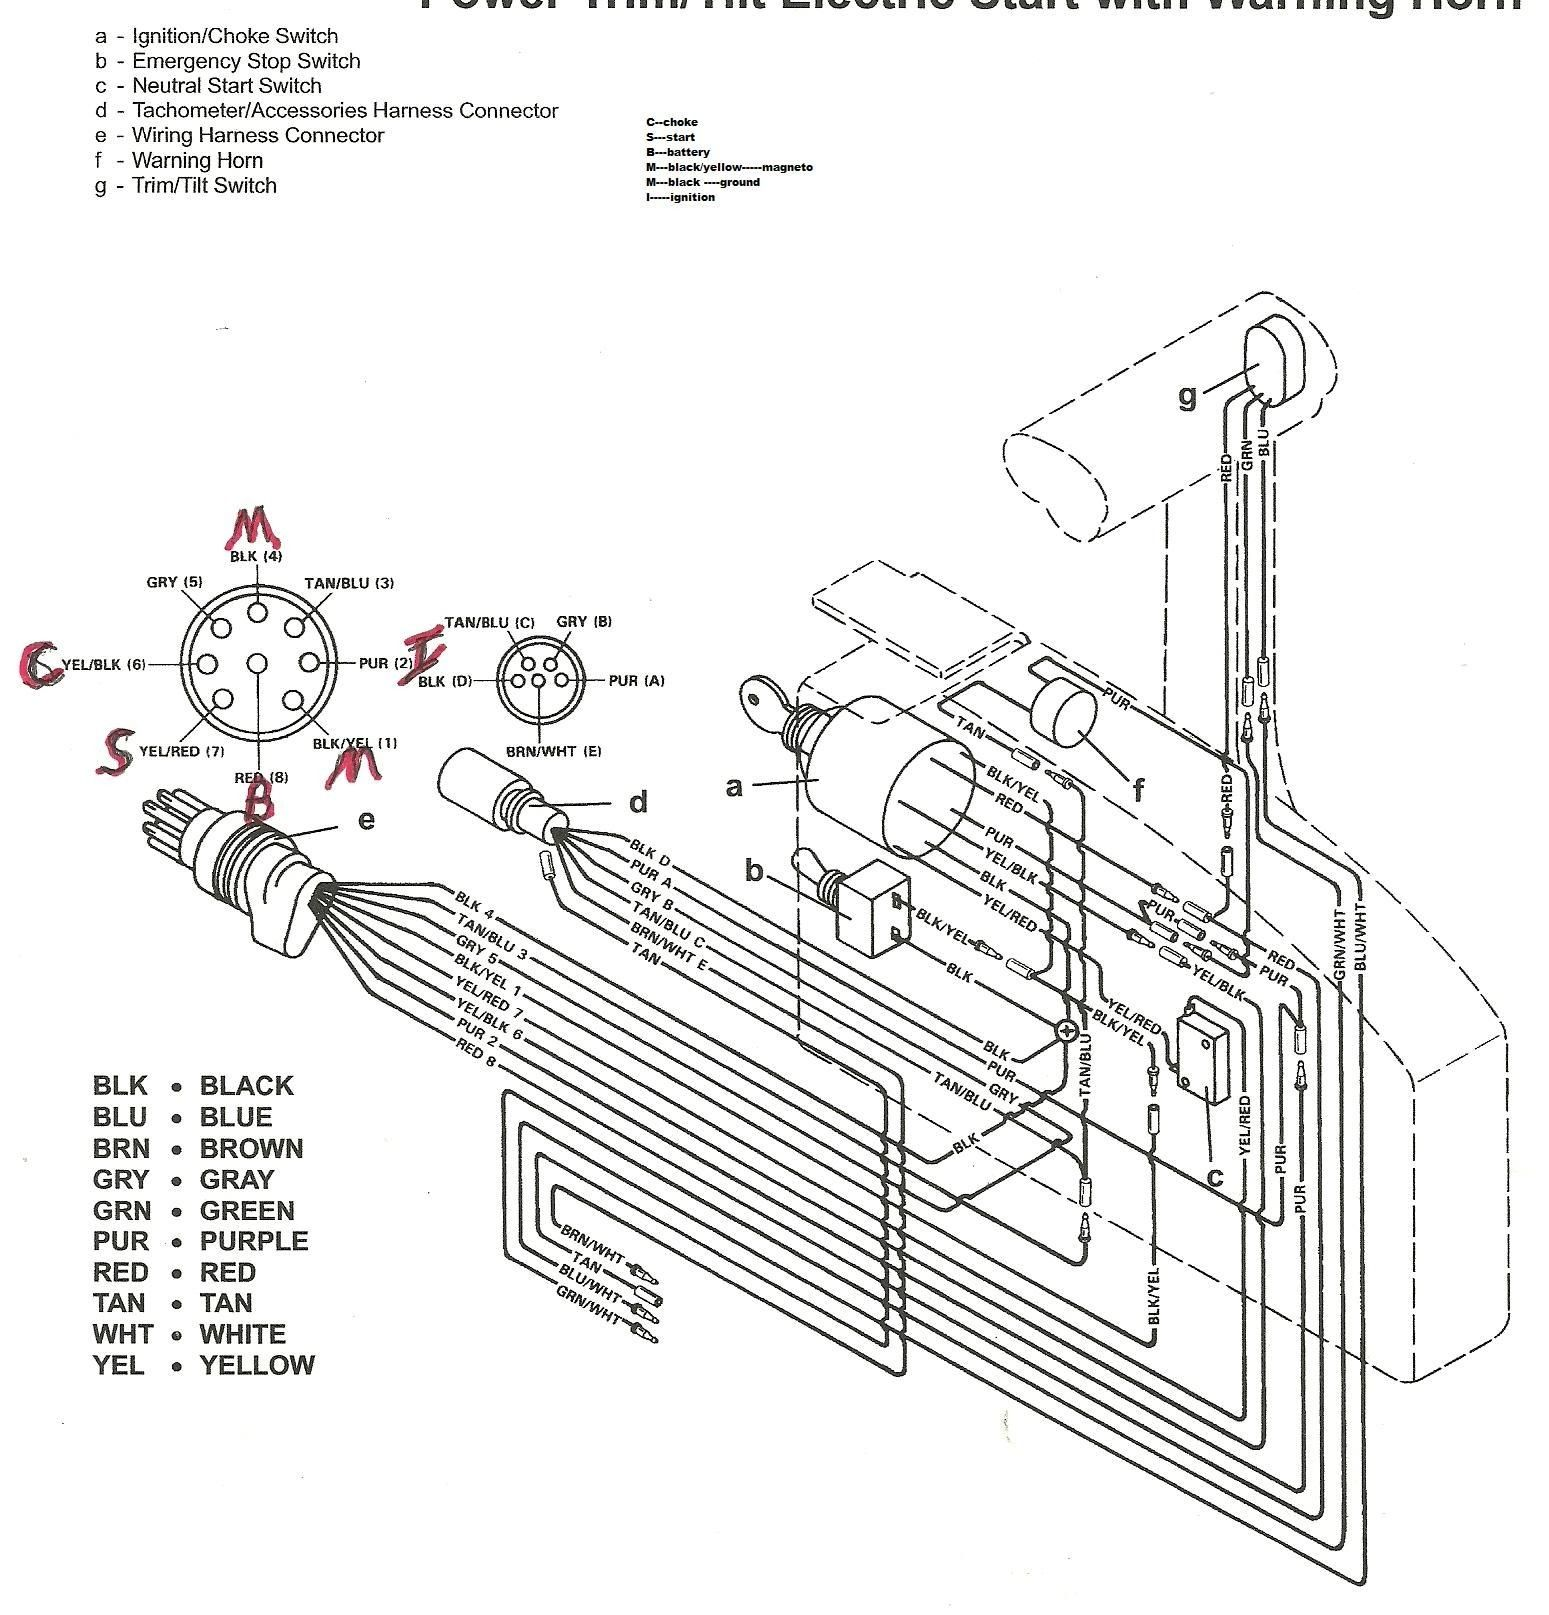 New Wiring Diagram For Emergency Key Switch Diagram Mercury Outboard Emergency